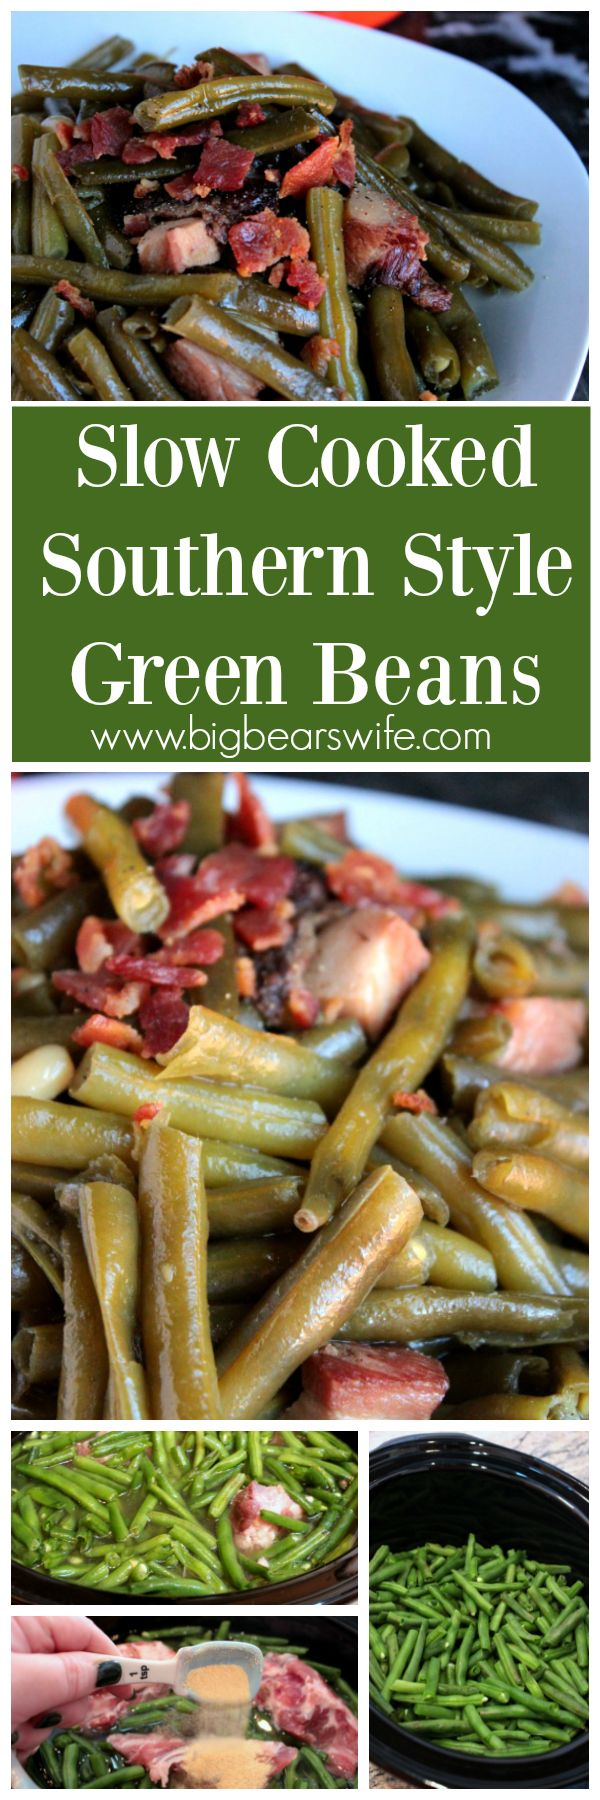 Slow Cooked Southern Style Green Beans                                                                                                                                                                                 More